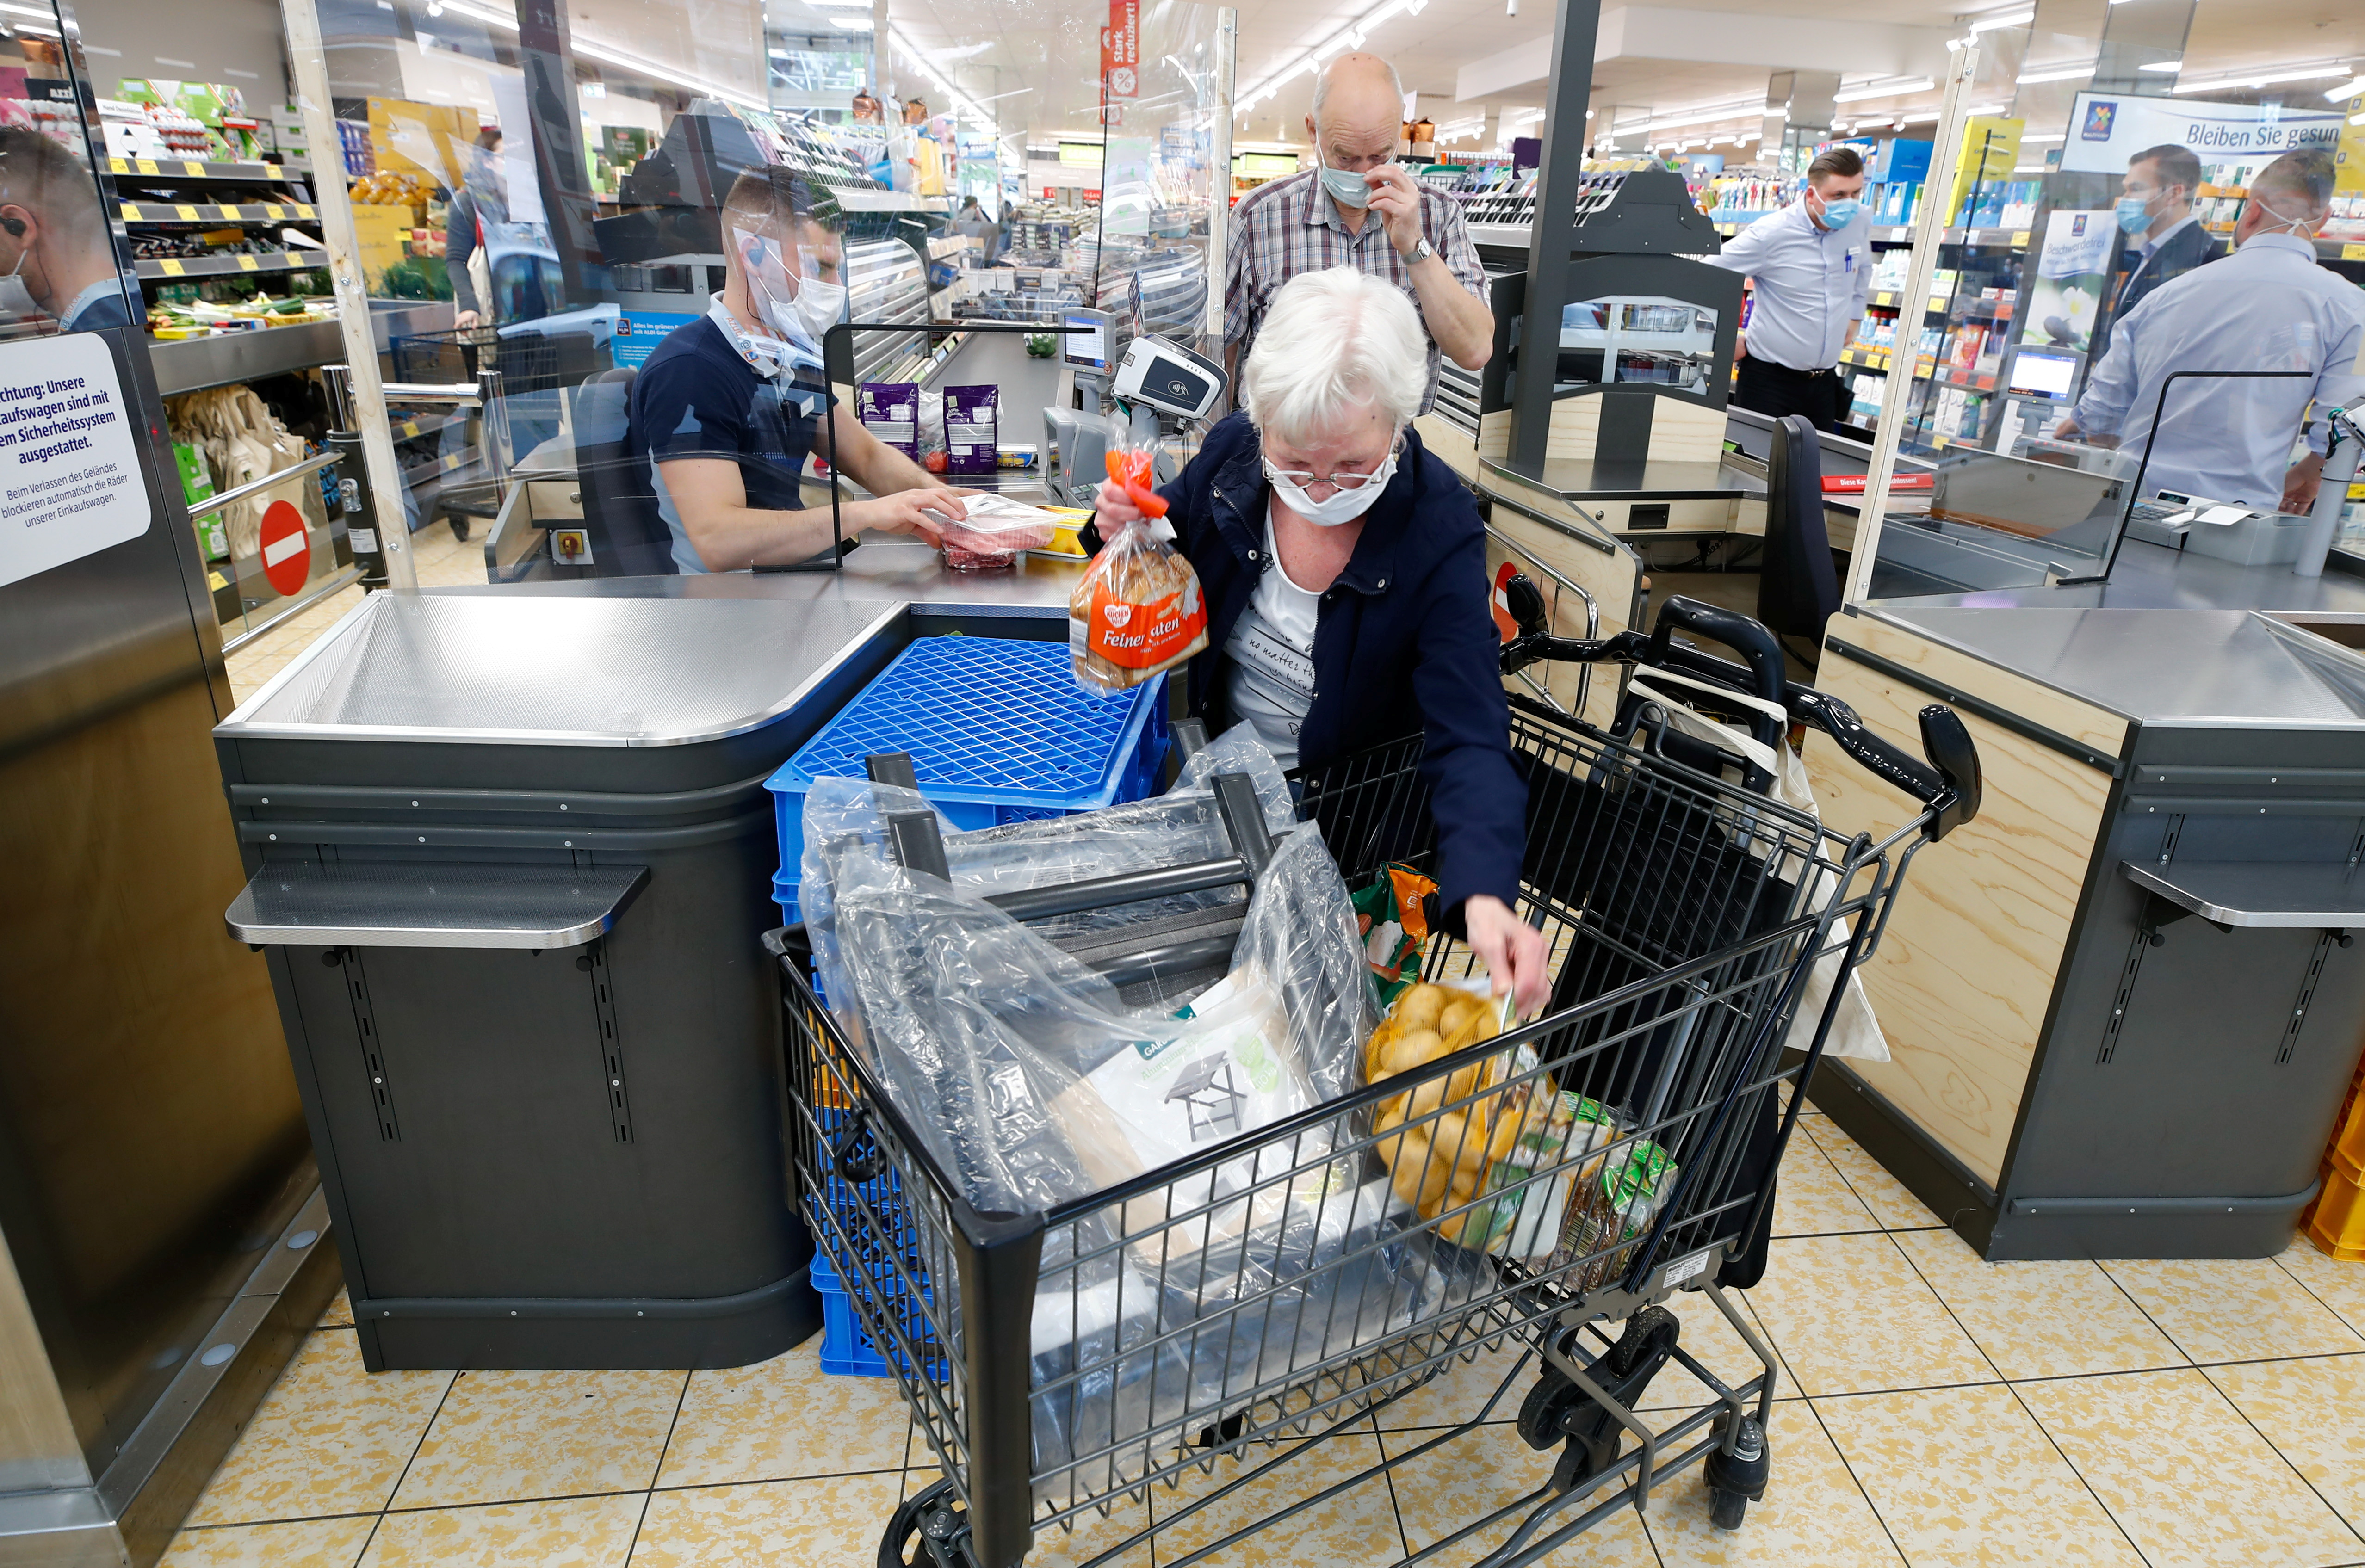 Customers at the food discounter ALDI buy groceries, as the spread of coronavirus disease (COVID-19) continues, in Duesseldorf, Germany, April 29, 2020. REUTERS/Wolfgang Rattay/File Photo